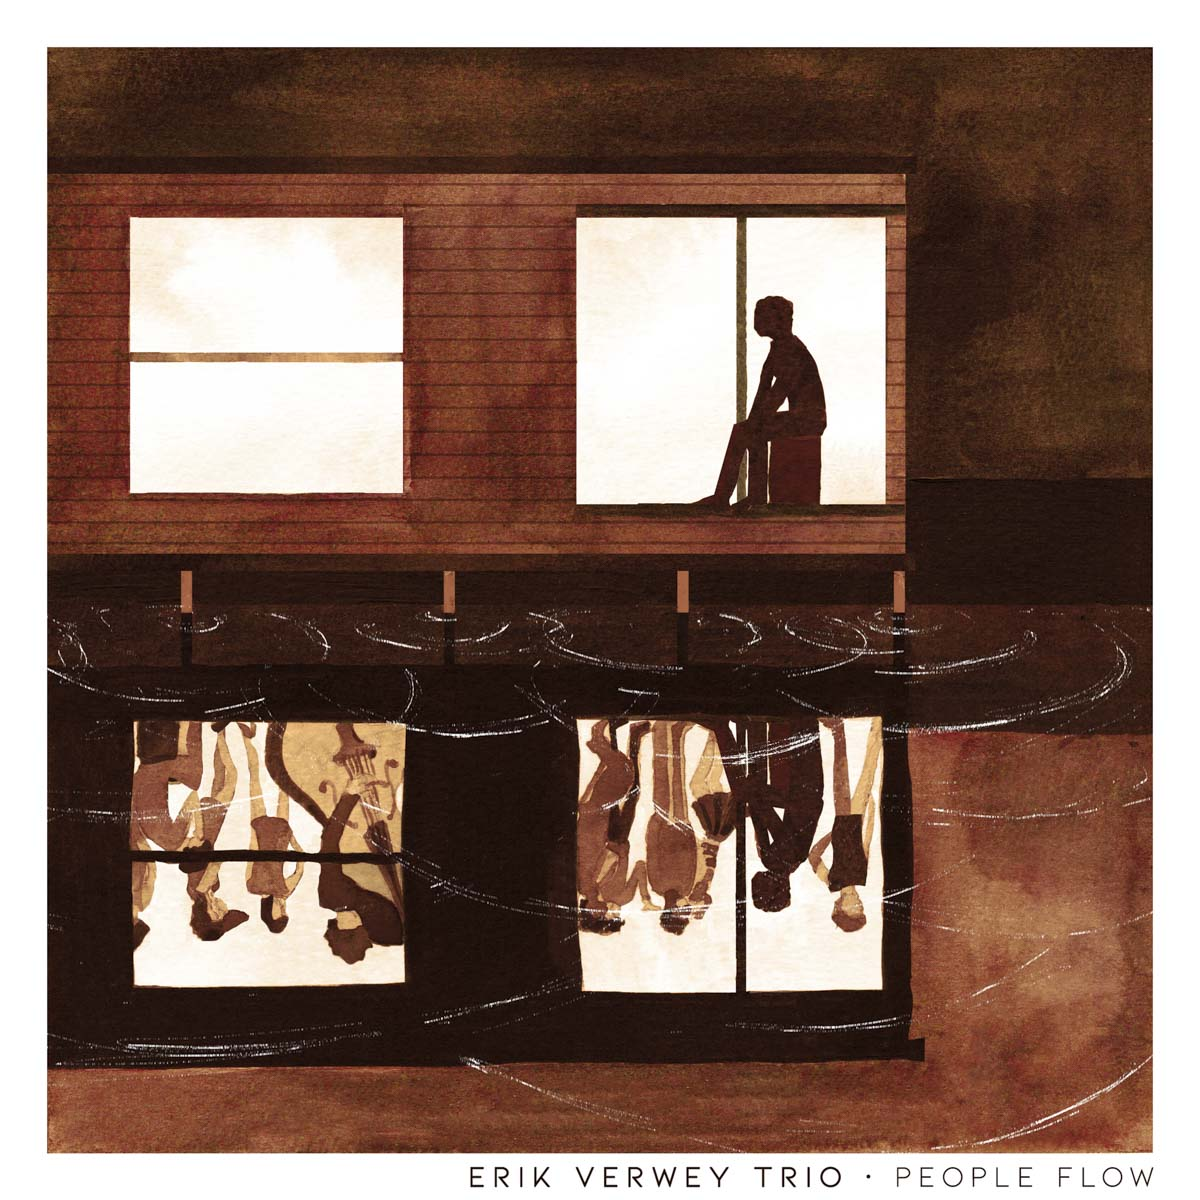 Erik Verwey Trio - People Flow